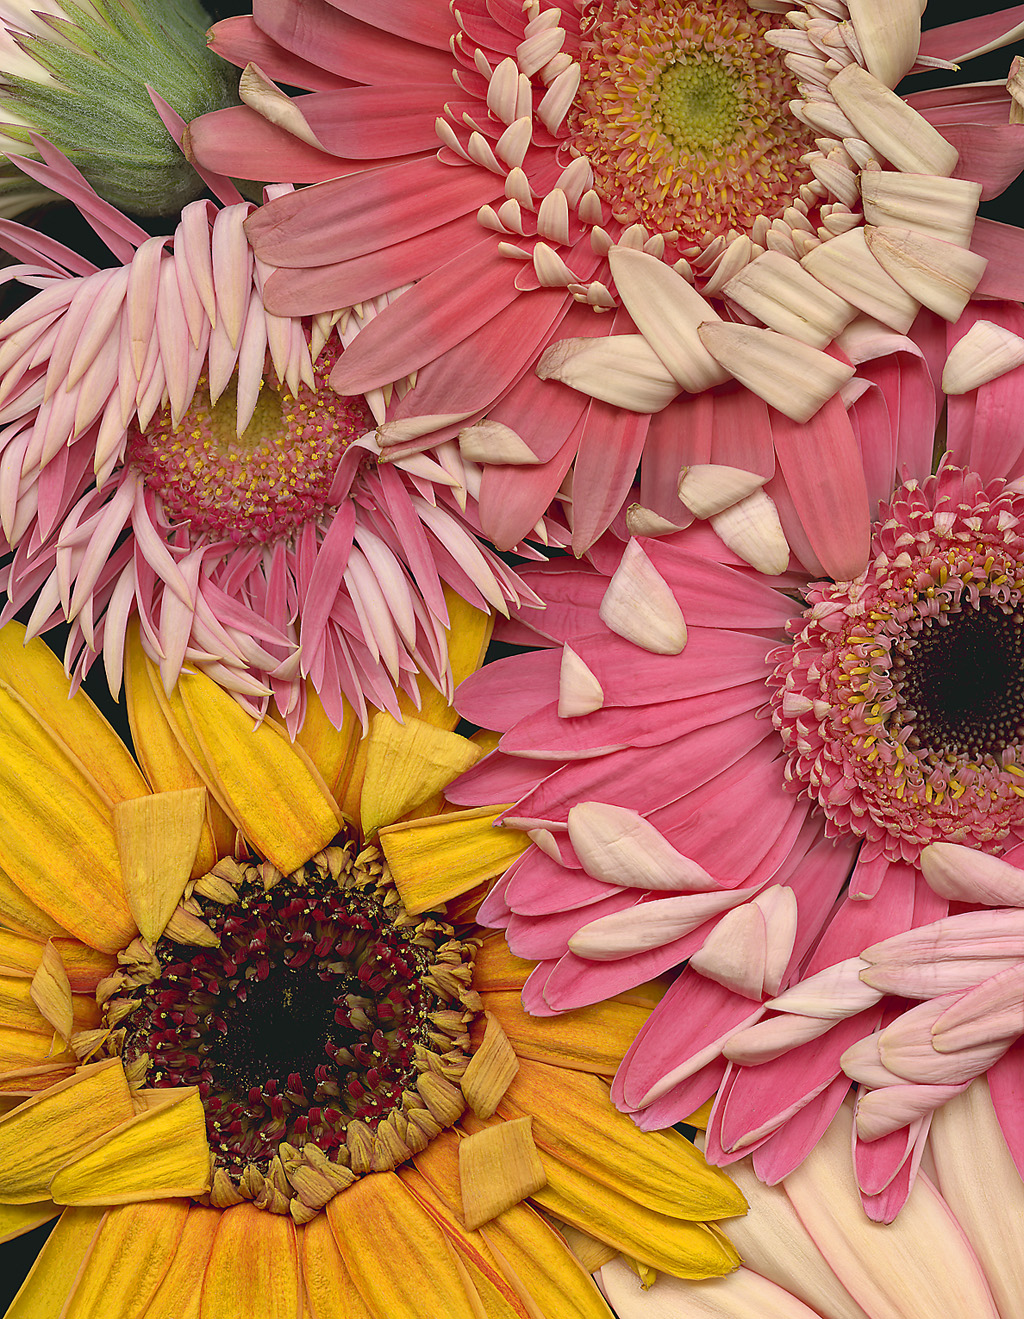 Graphic Flower And Plant Images.